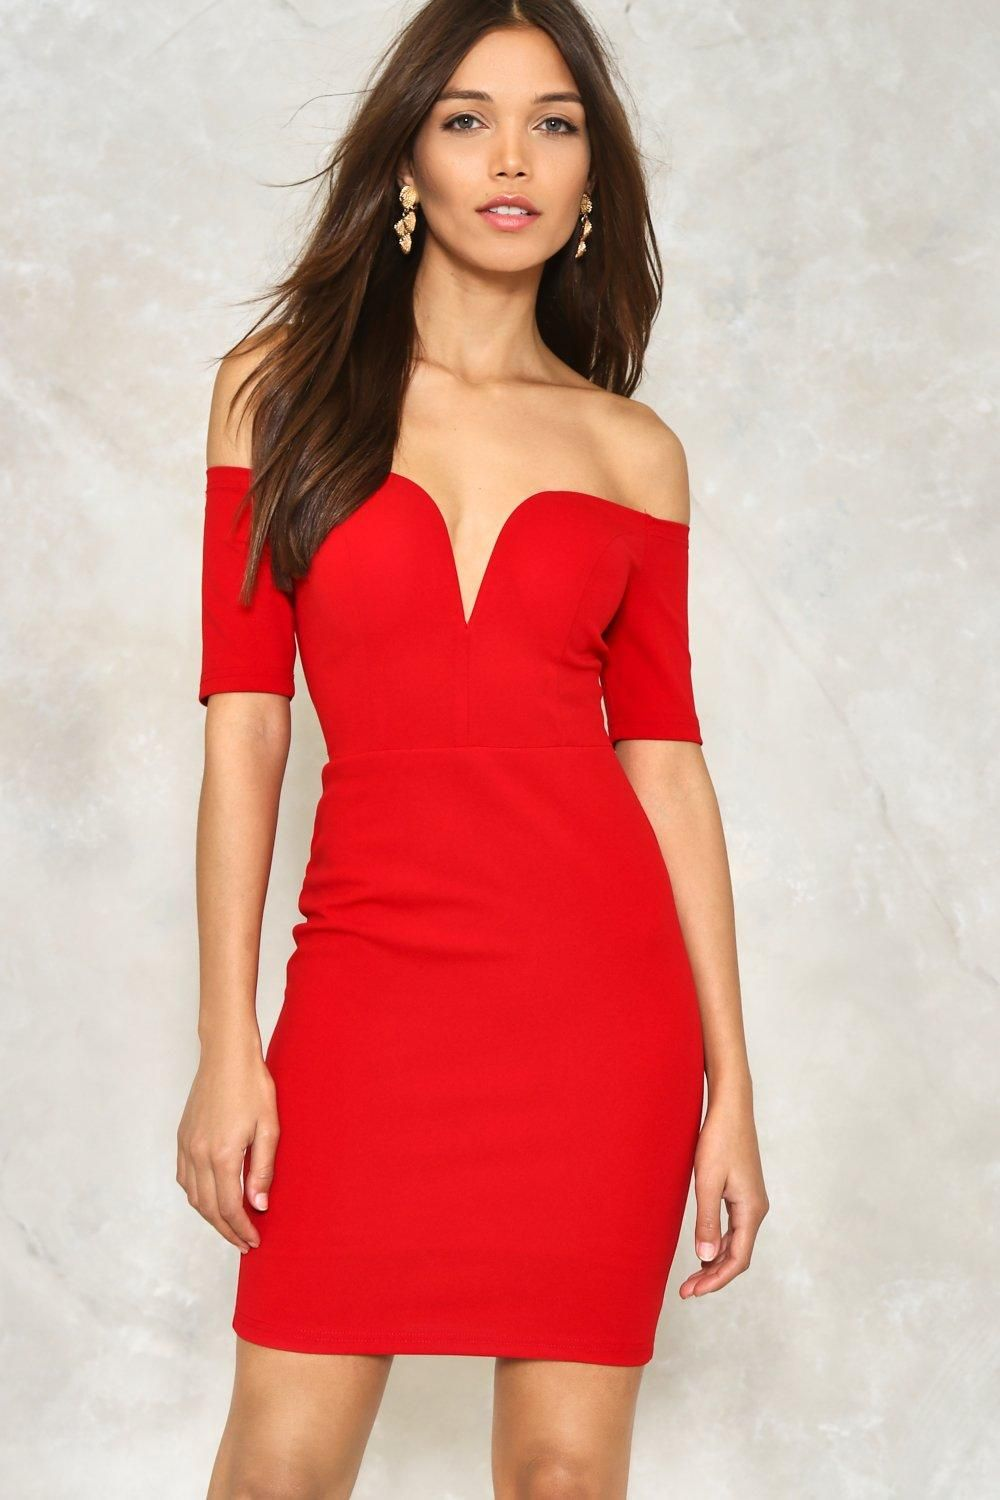 915bff4cb03b1 The One Way or Another Dress features a plunging sweetheart neckline